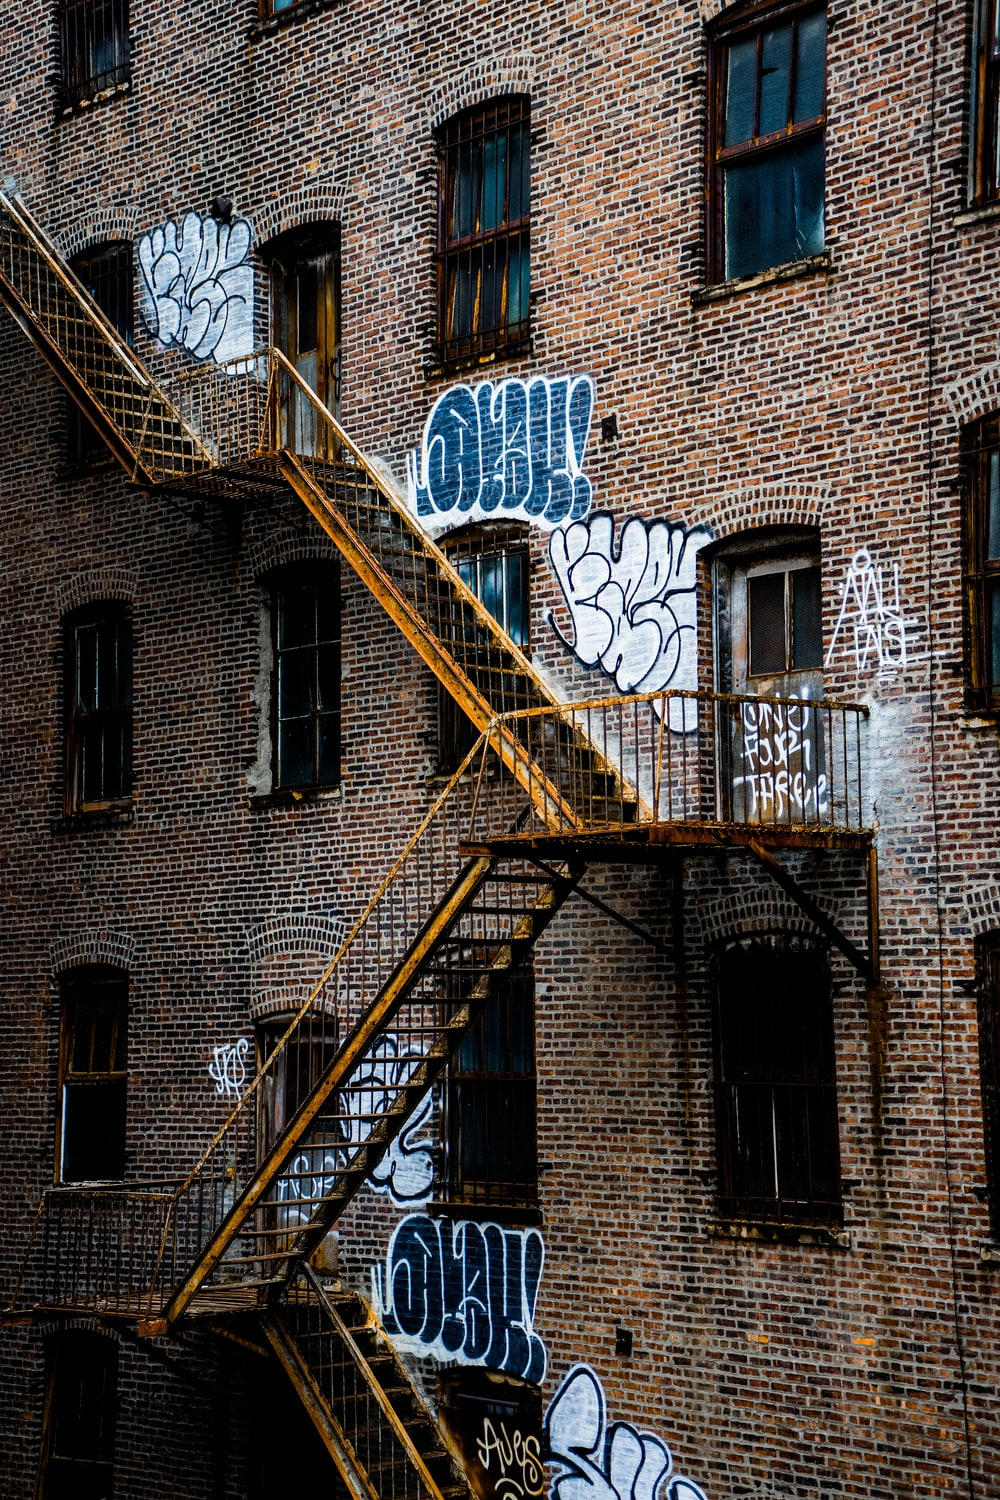 brown brick building with yellow metal ladder